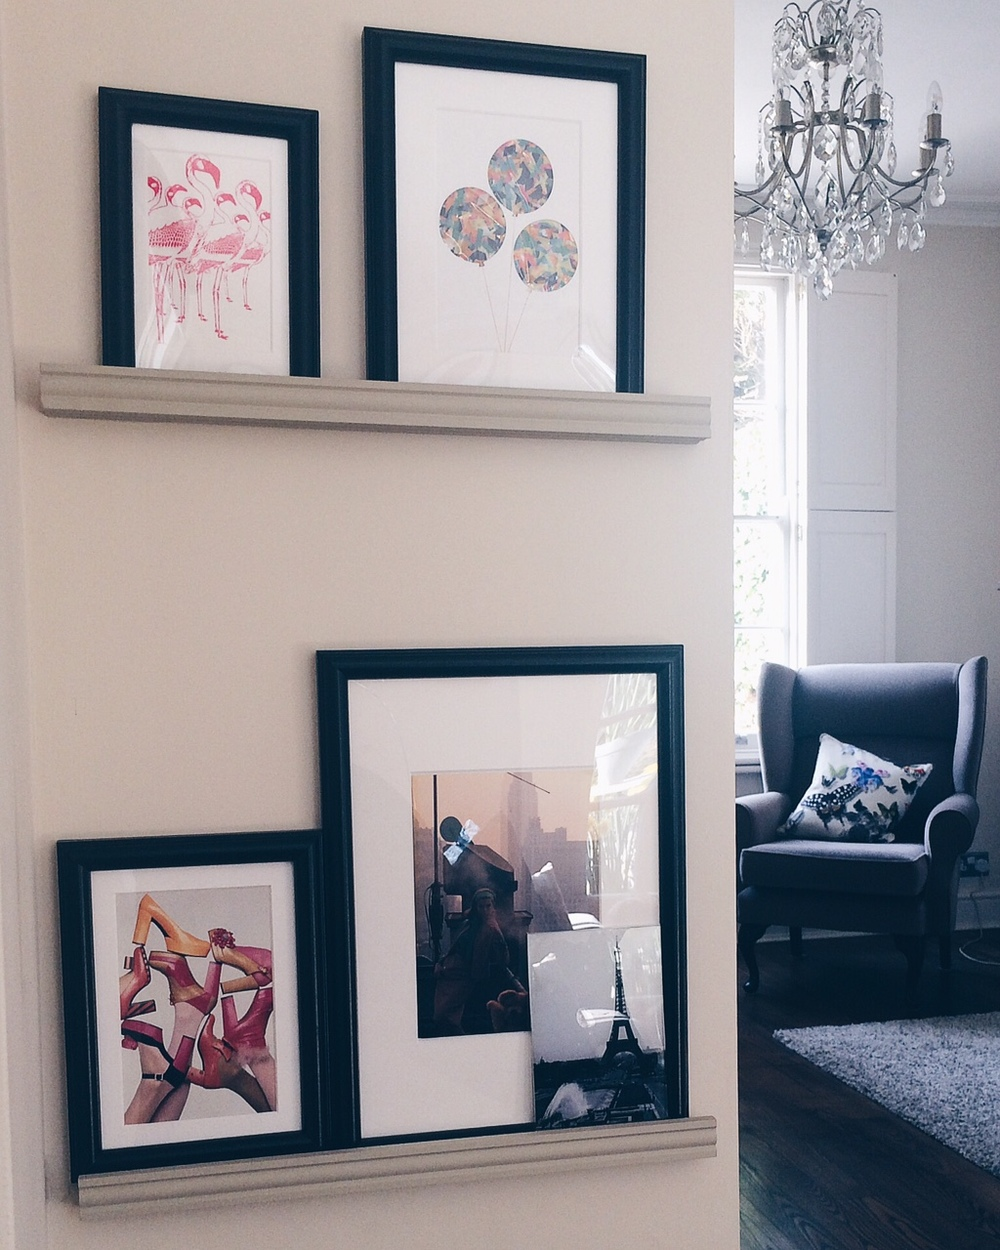 Ikea Photo Ledges: How To DIY A Cheap As Chips Picture Ledge